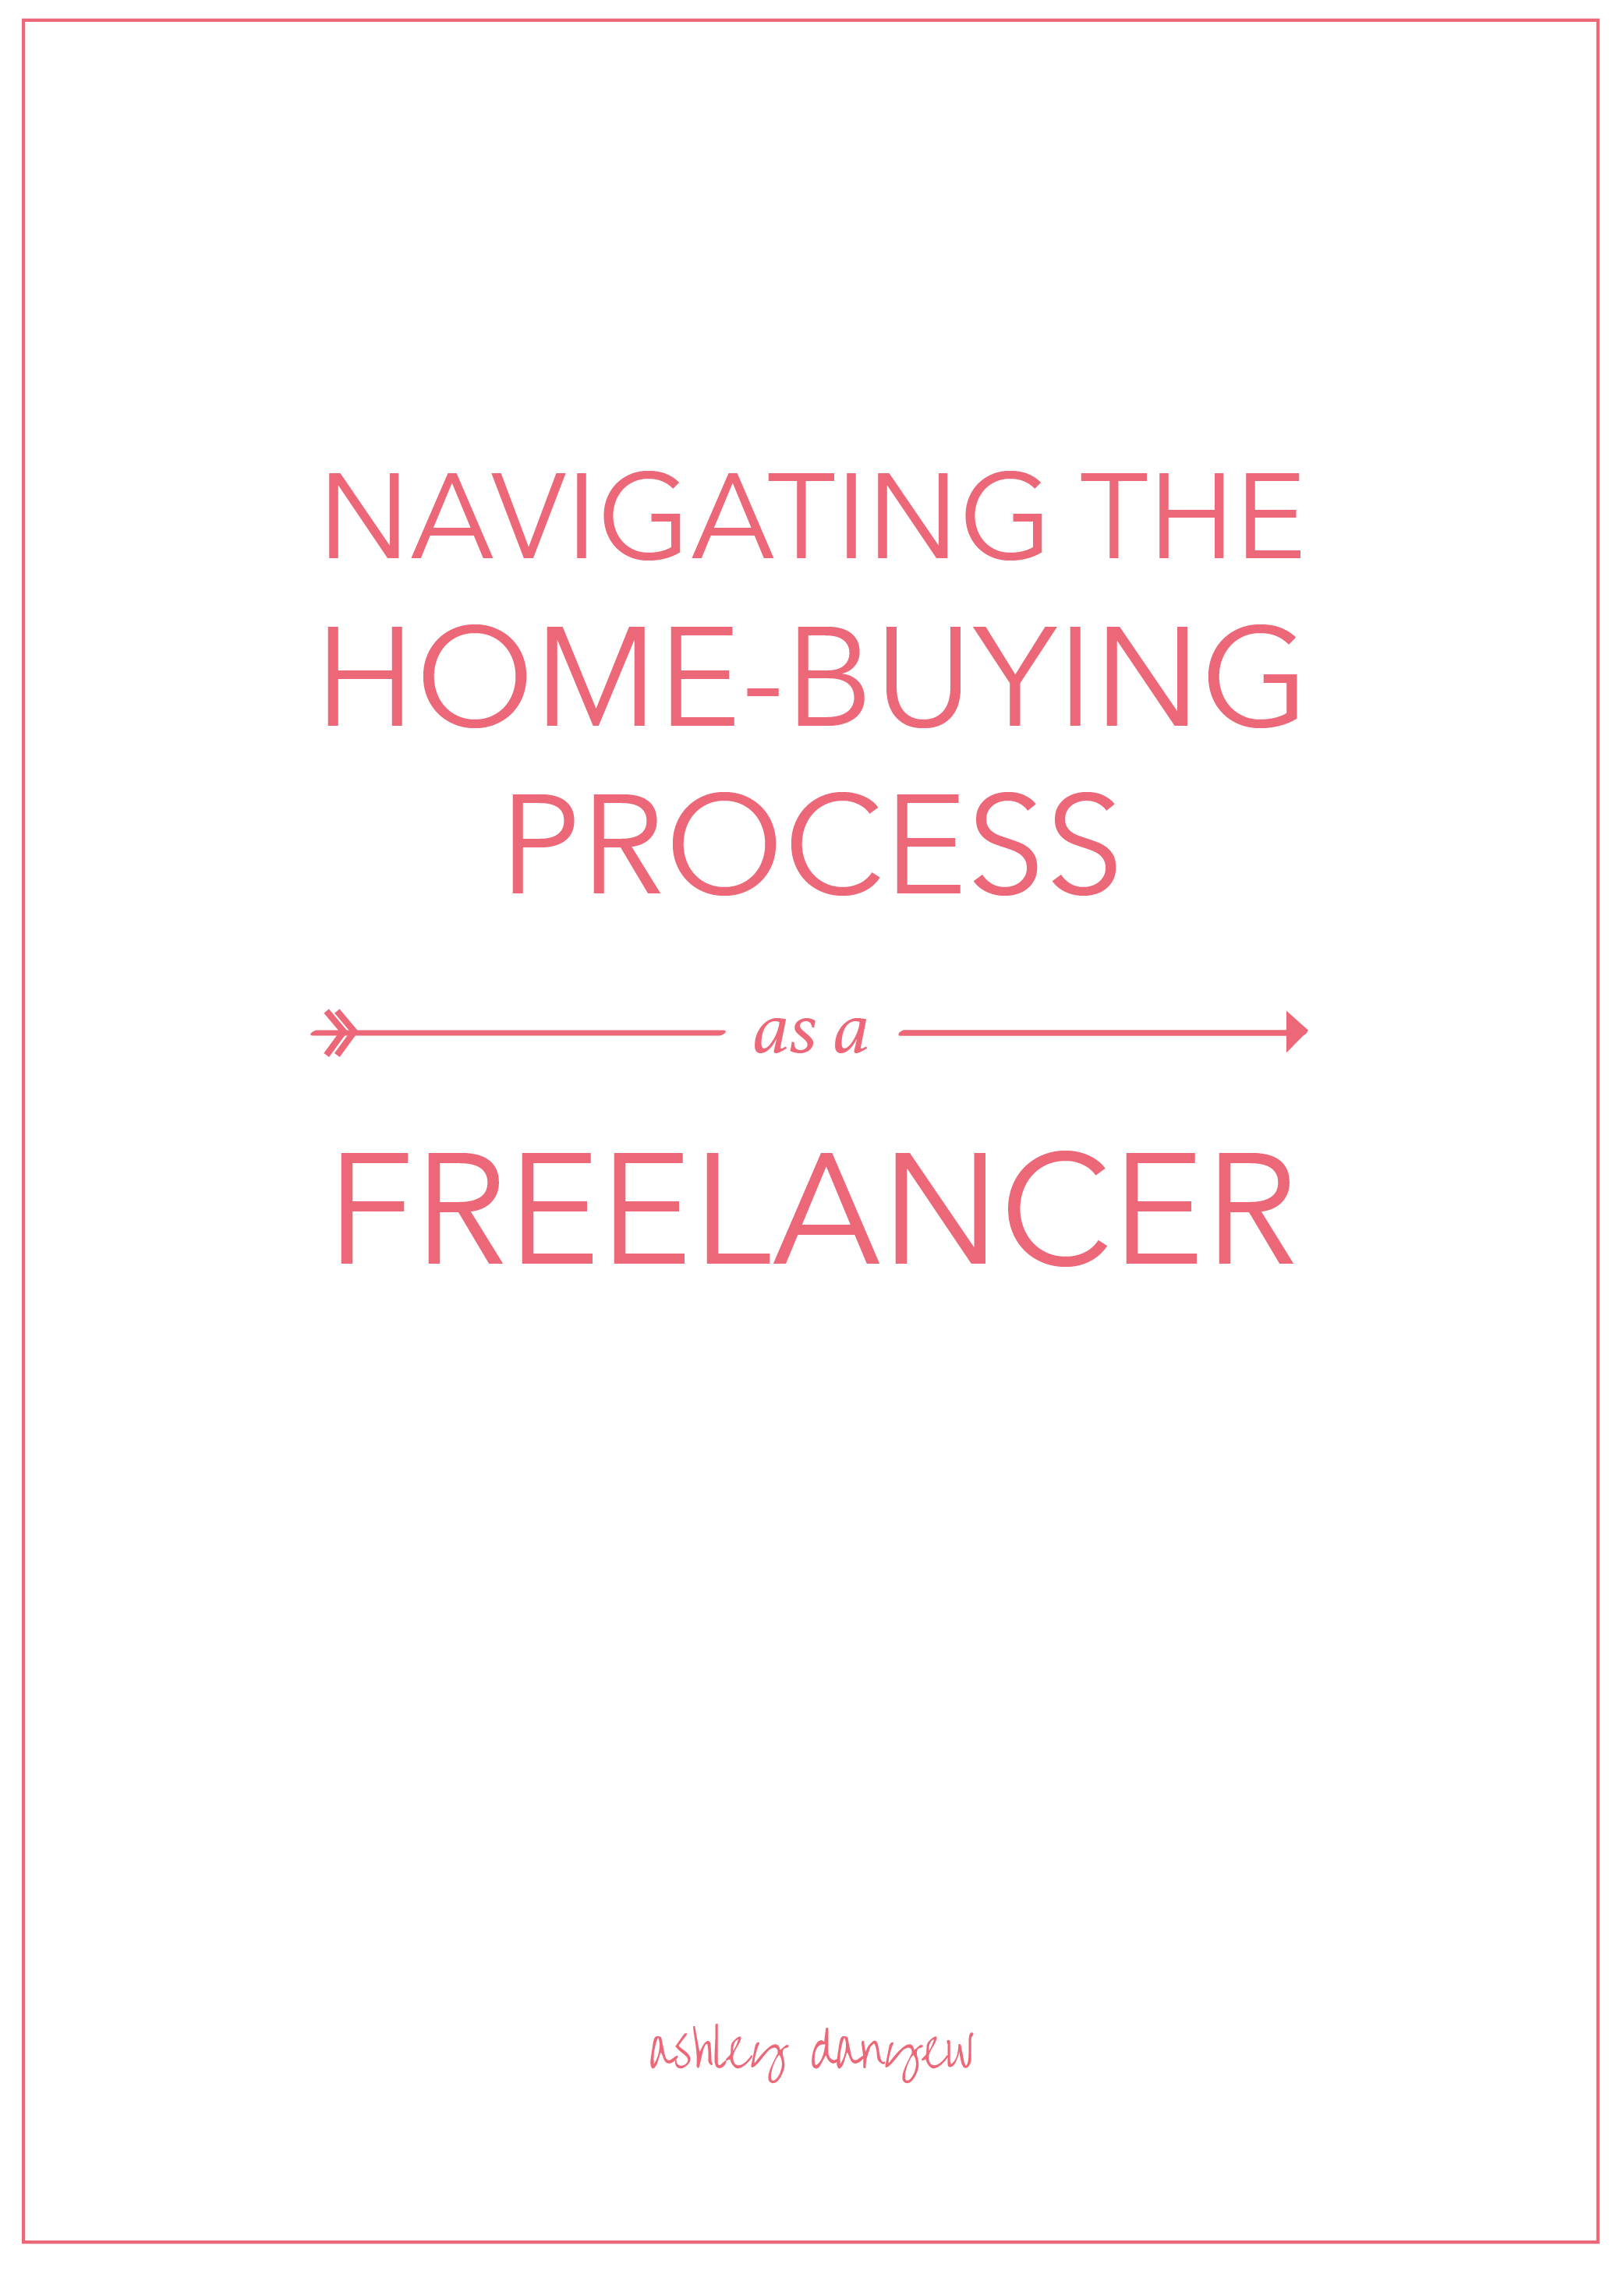 Navigating the Home-Buying Process as a Freelancer-01.png